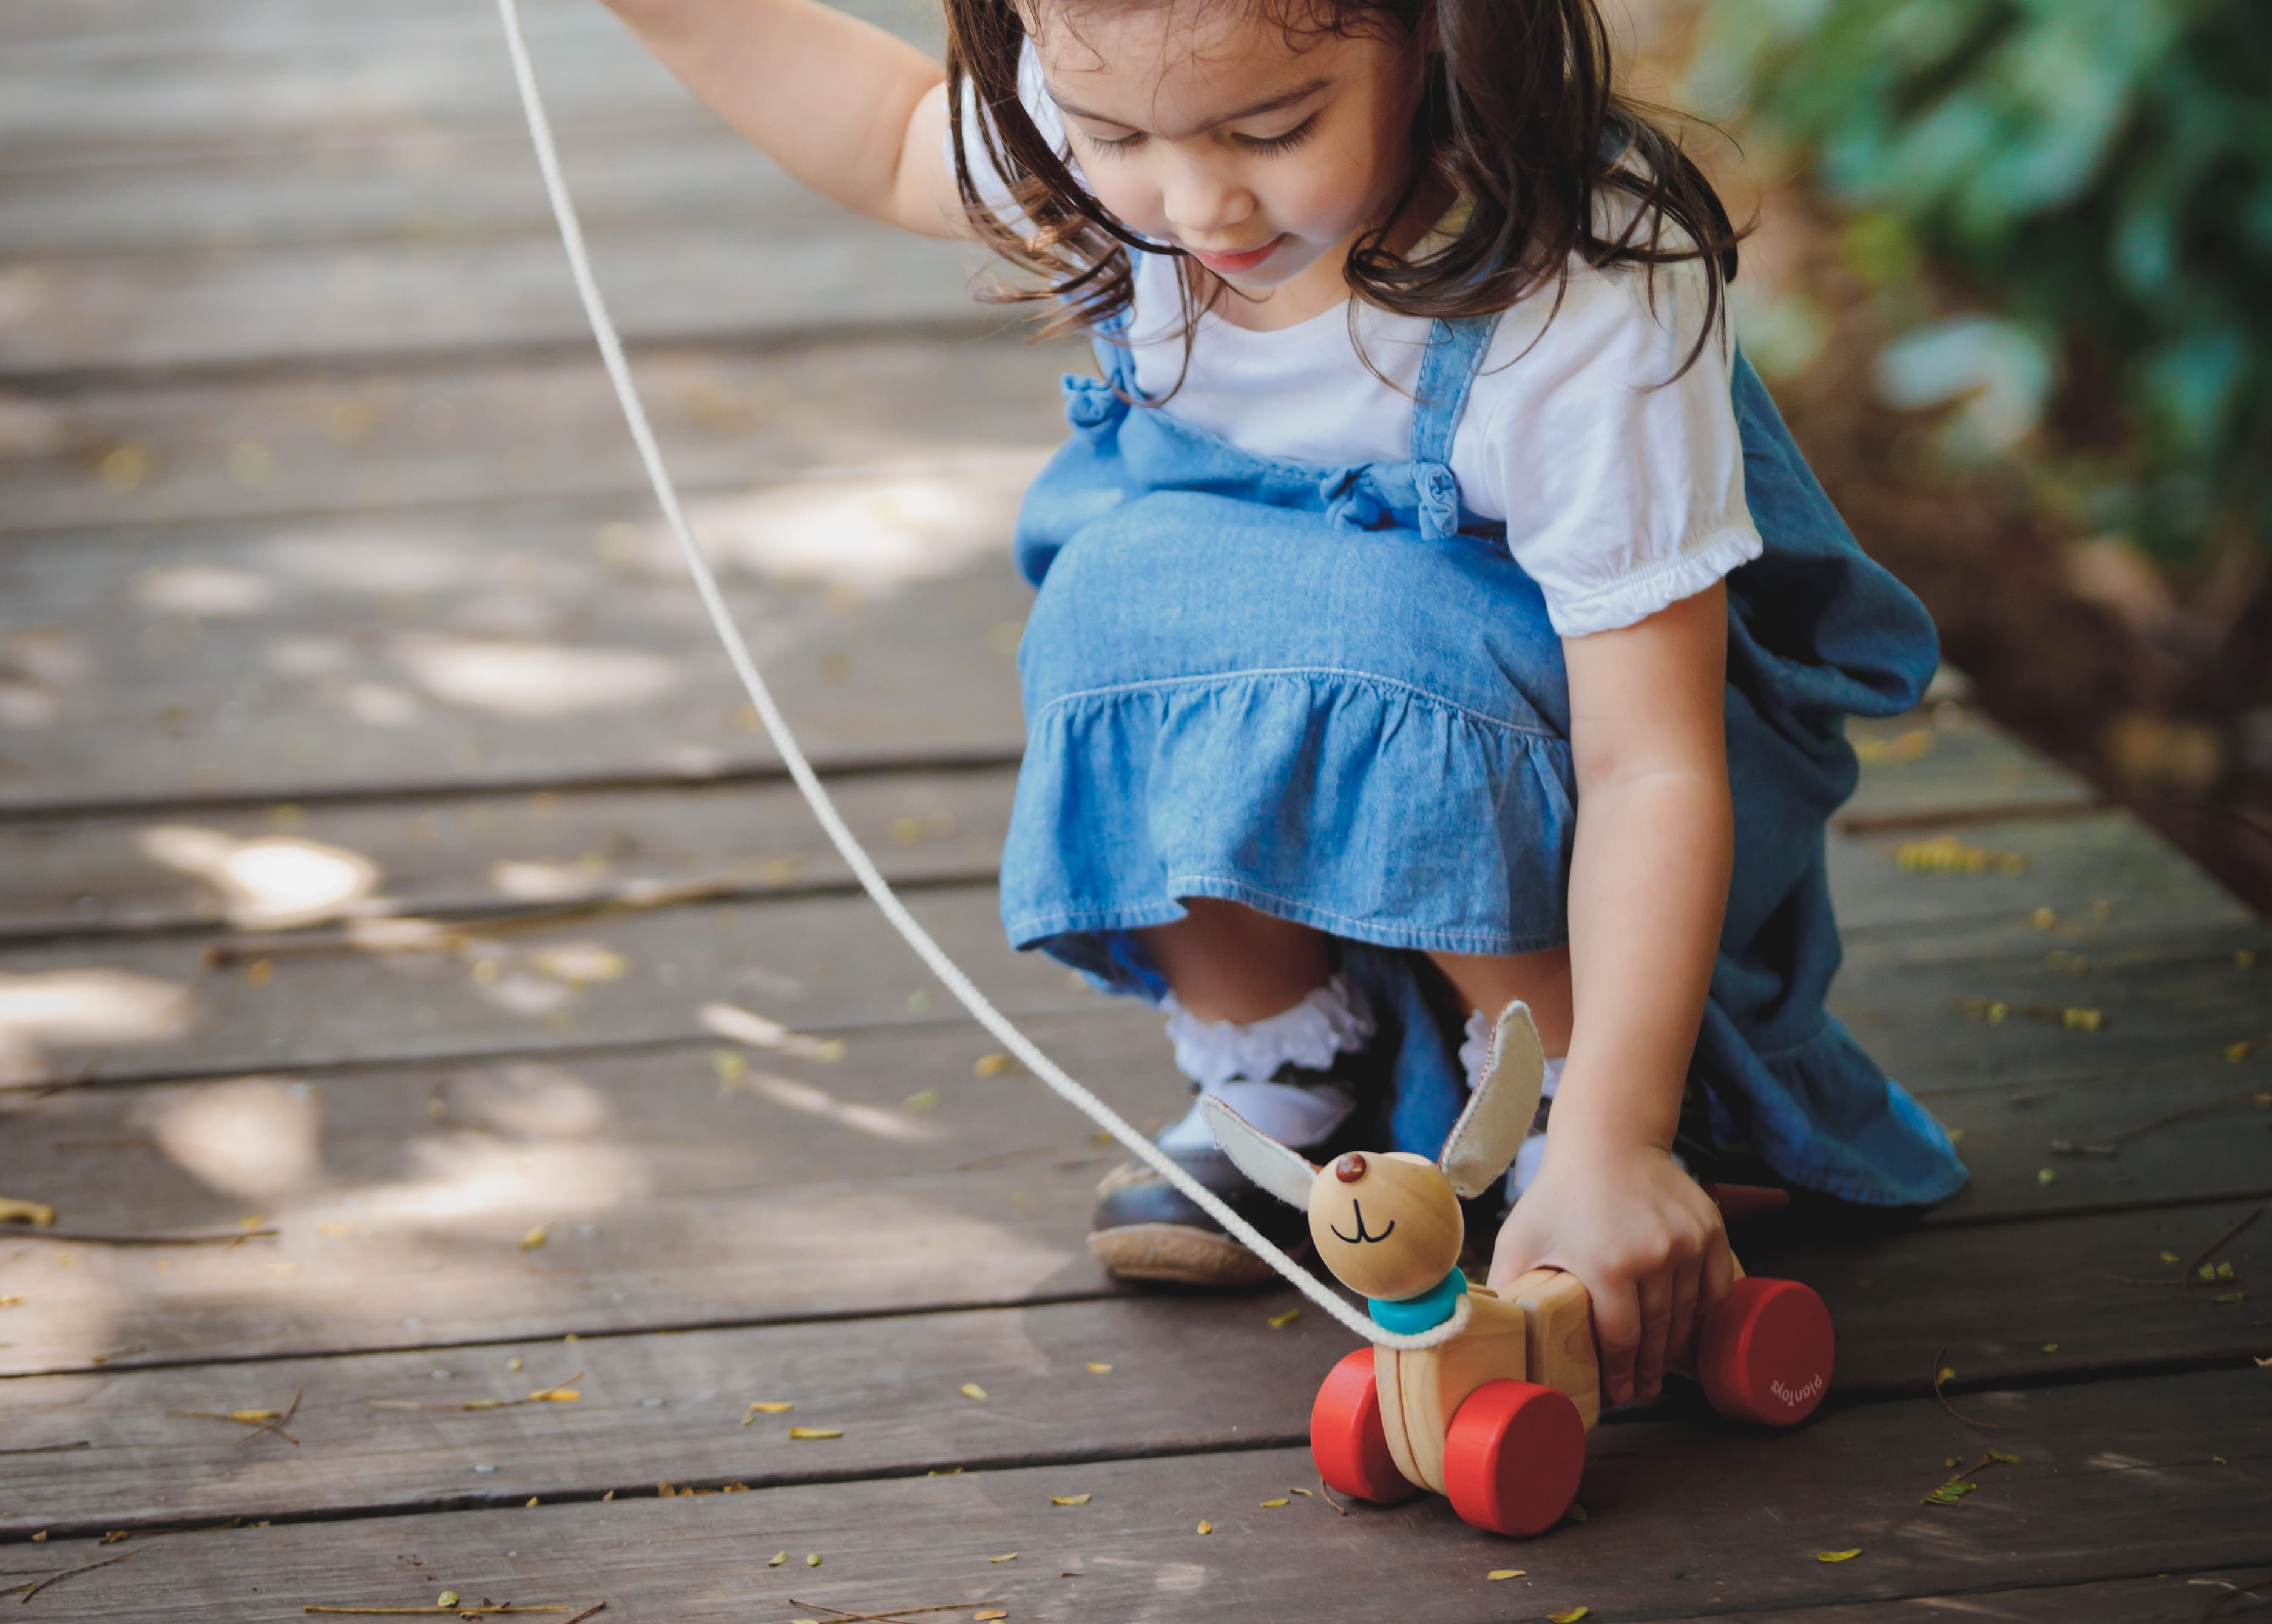 5101_PlanToys_HAPPY_PUPPY_Push_and_Pull_Gross_Motor_Coordination_Imagination_12m_Wooden_toys_Education_toys_Safety_Toys_Non-toxic_7.jpg